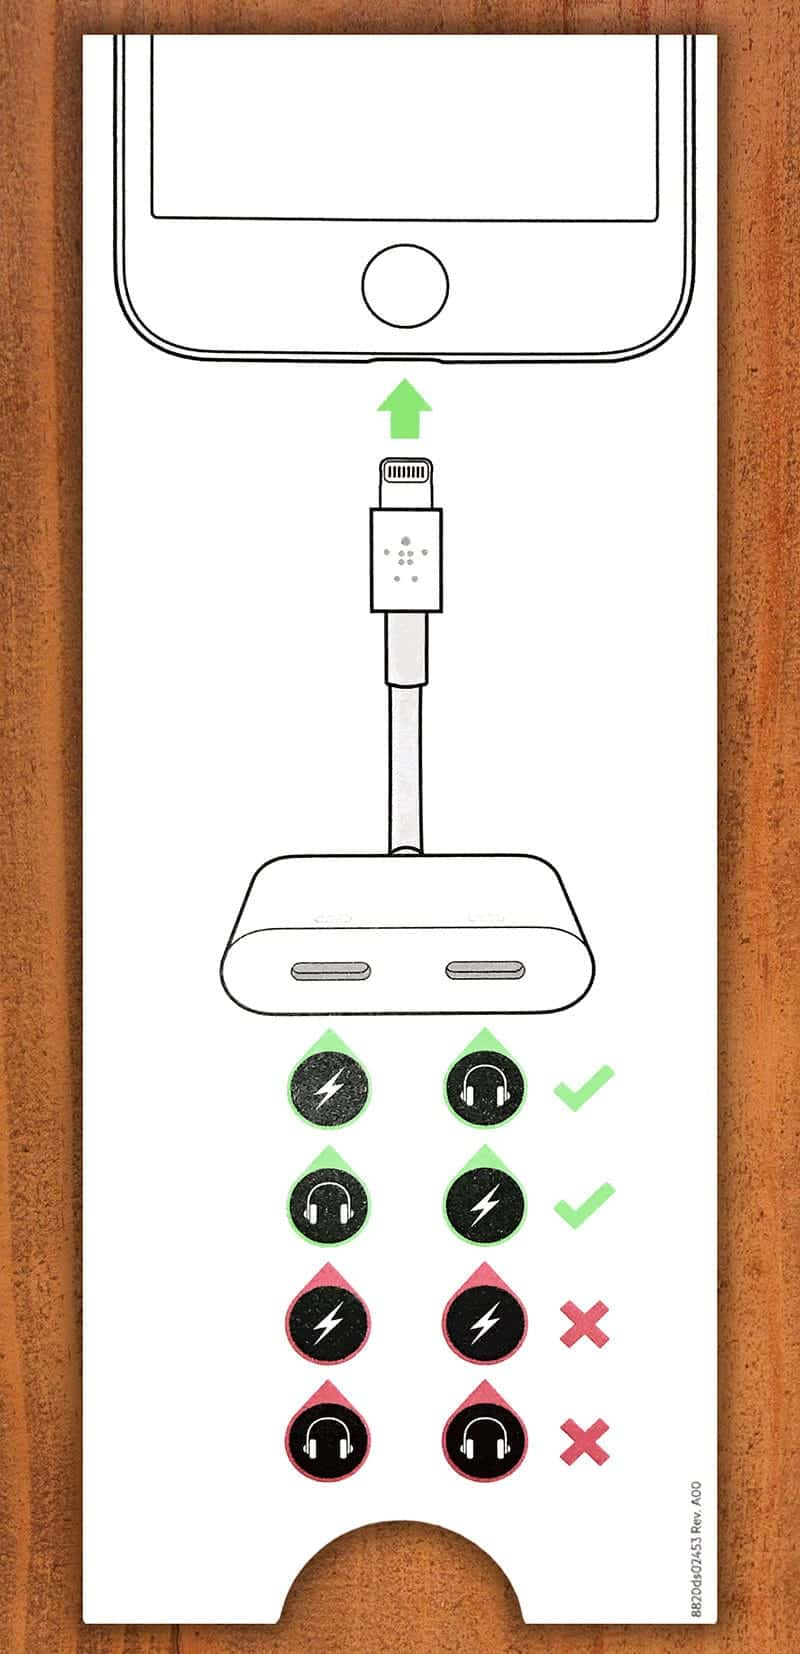 Lean Six Sigma Is Everywhere: Apple Adapter Instructions - GoLeanSixSigma.com